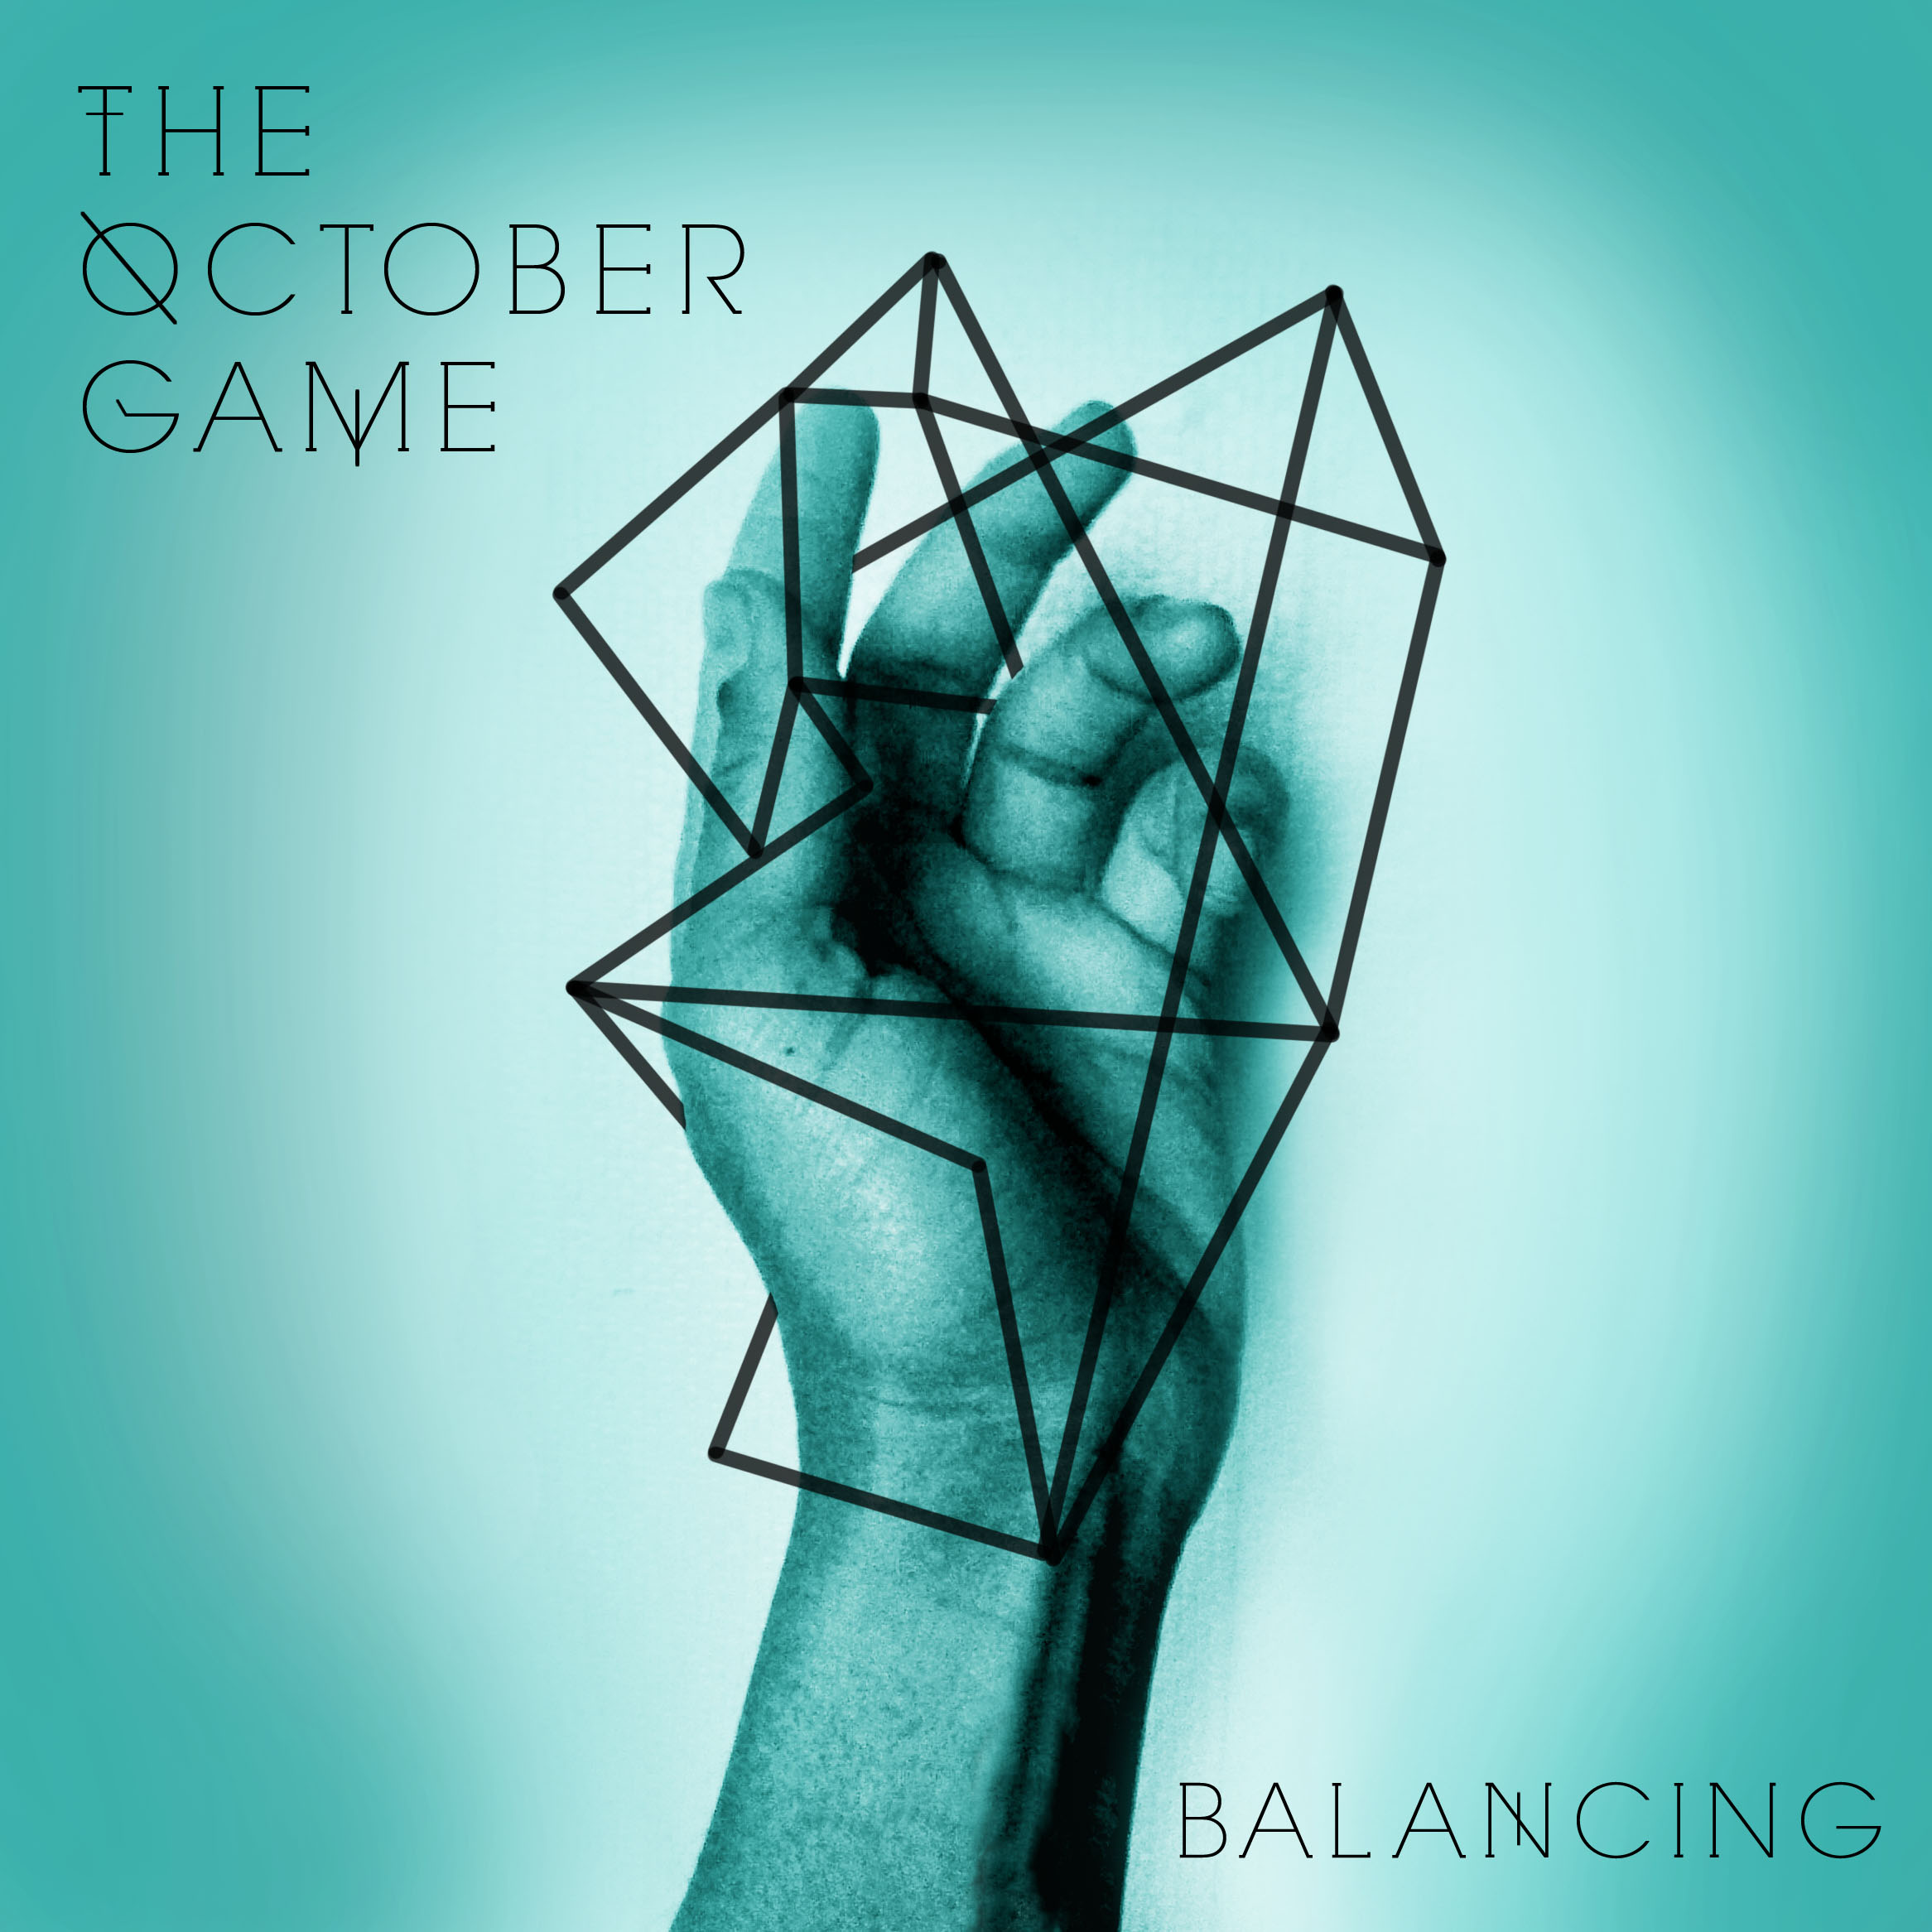 The October Game - Balancing - Cover Art